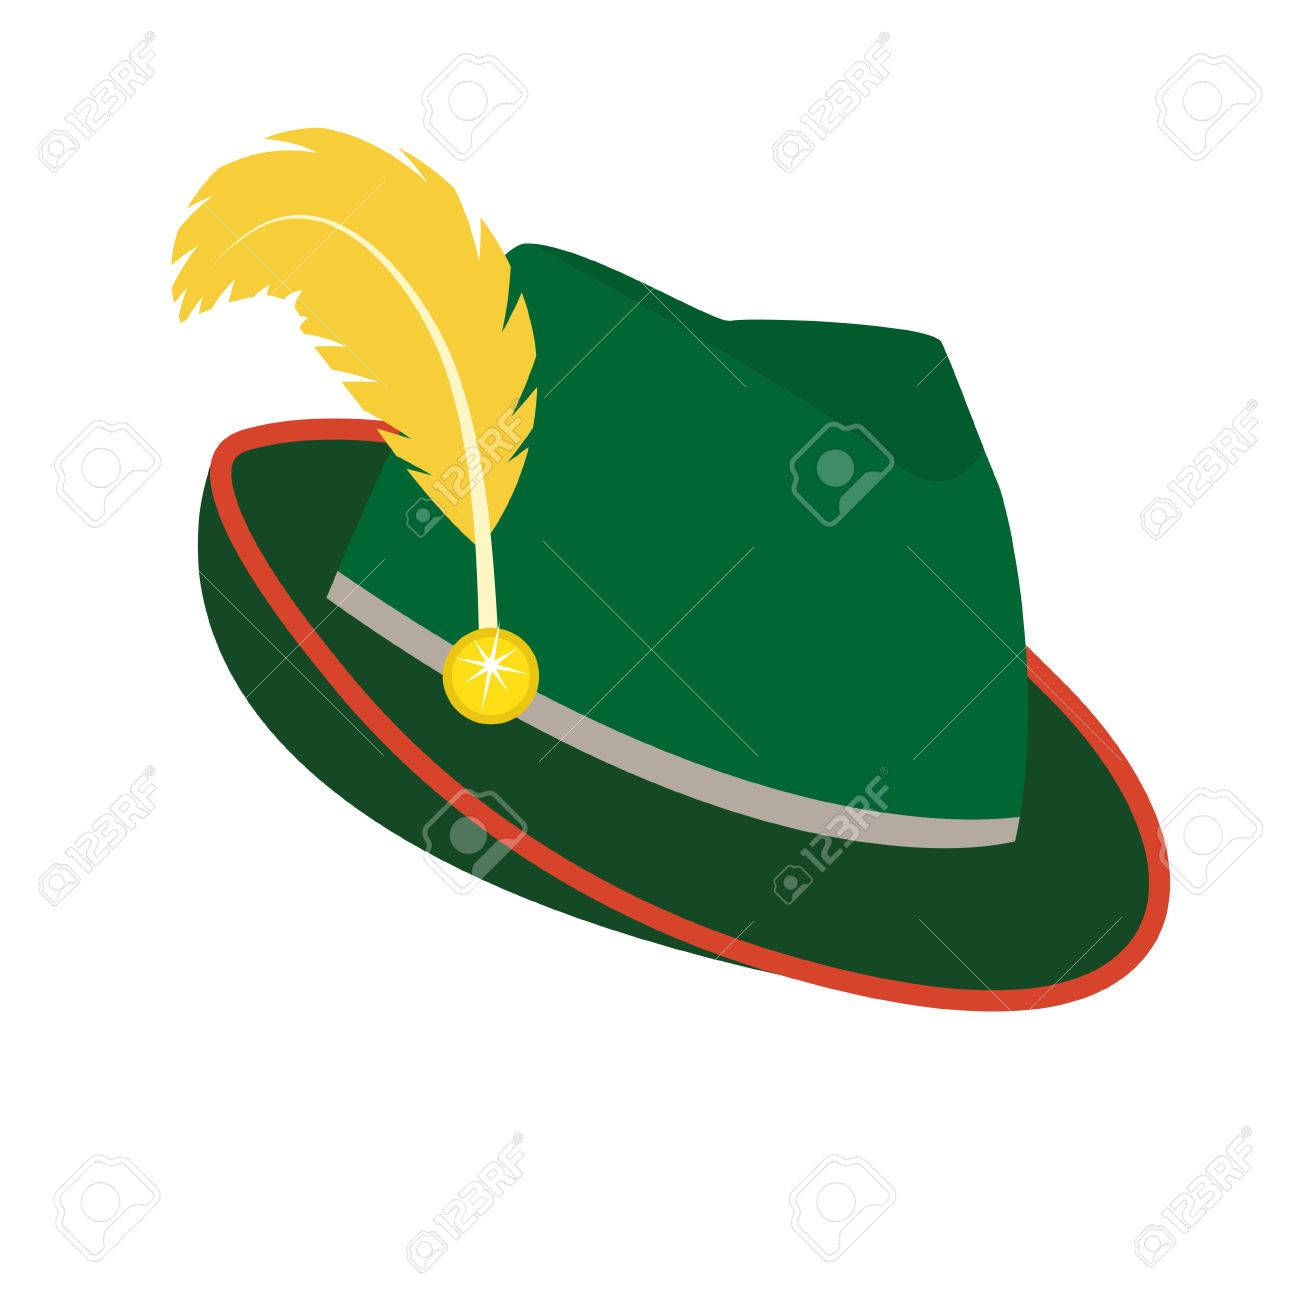 e7d3f212f1c Oktoberfest hat icon flat style. Isolated on white background. Green  national German hat.